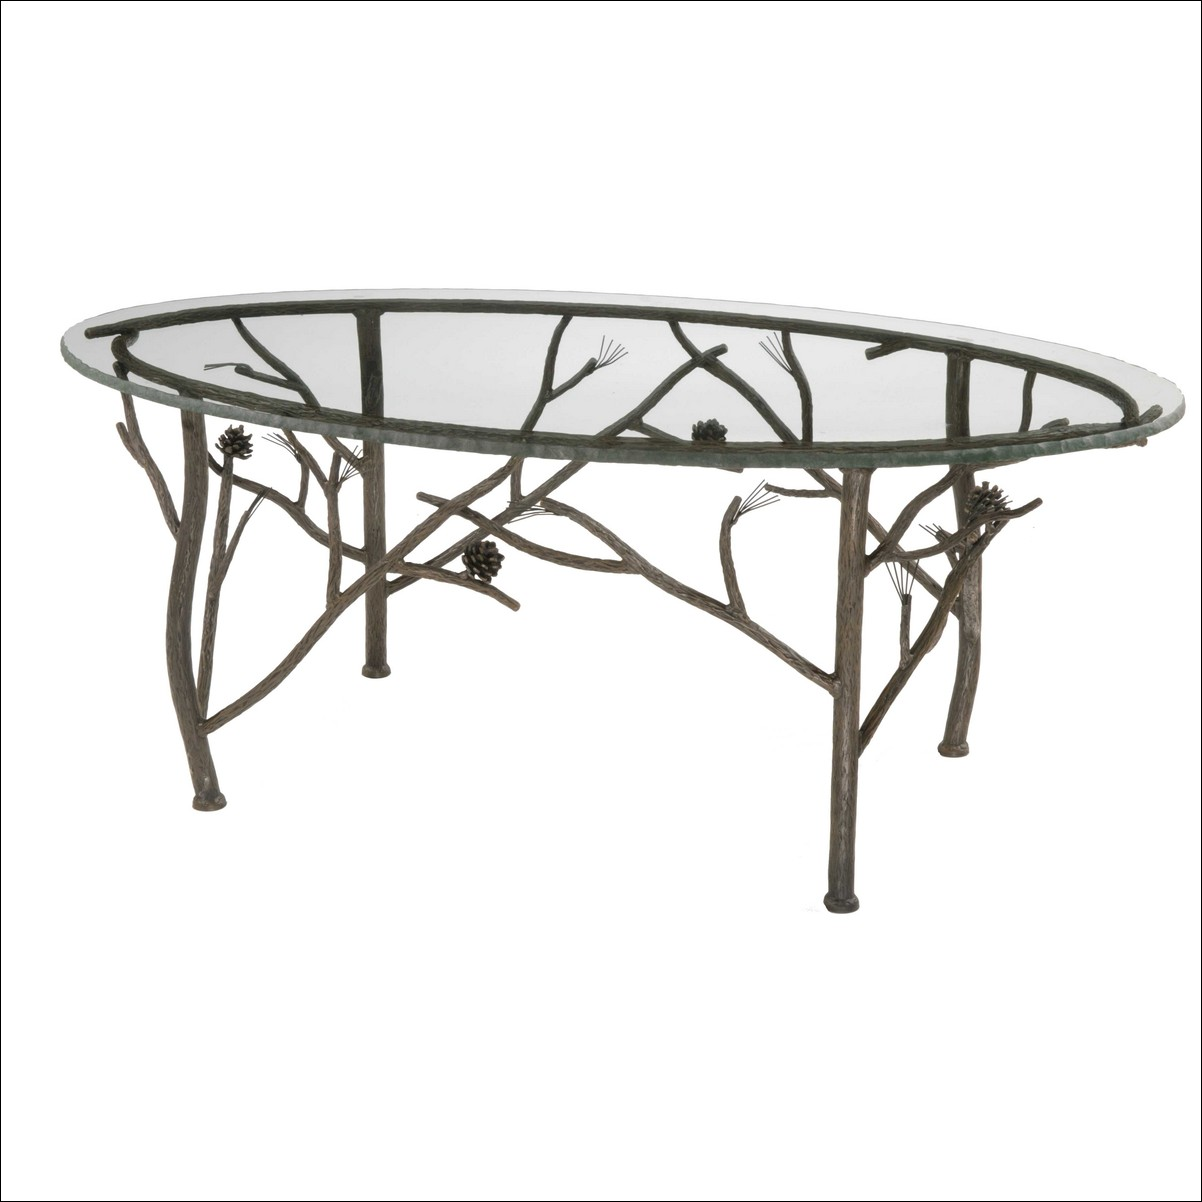 coffee accent tables wrought iron end with glass tops table legs bronze clear lamps for bedroom small white patio side outdoor umbrella hole narrow black inch round decorator